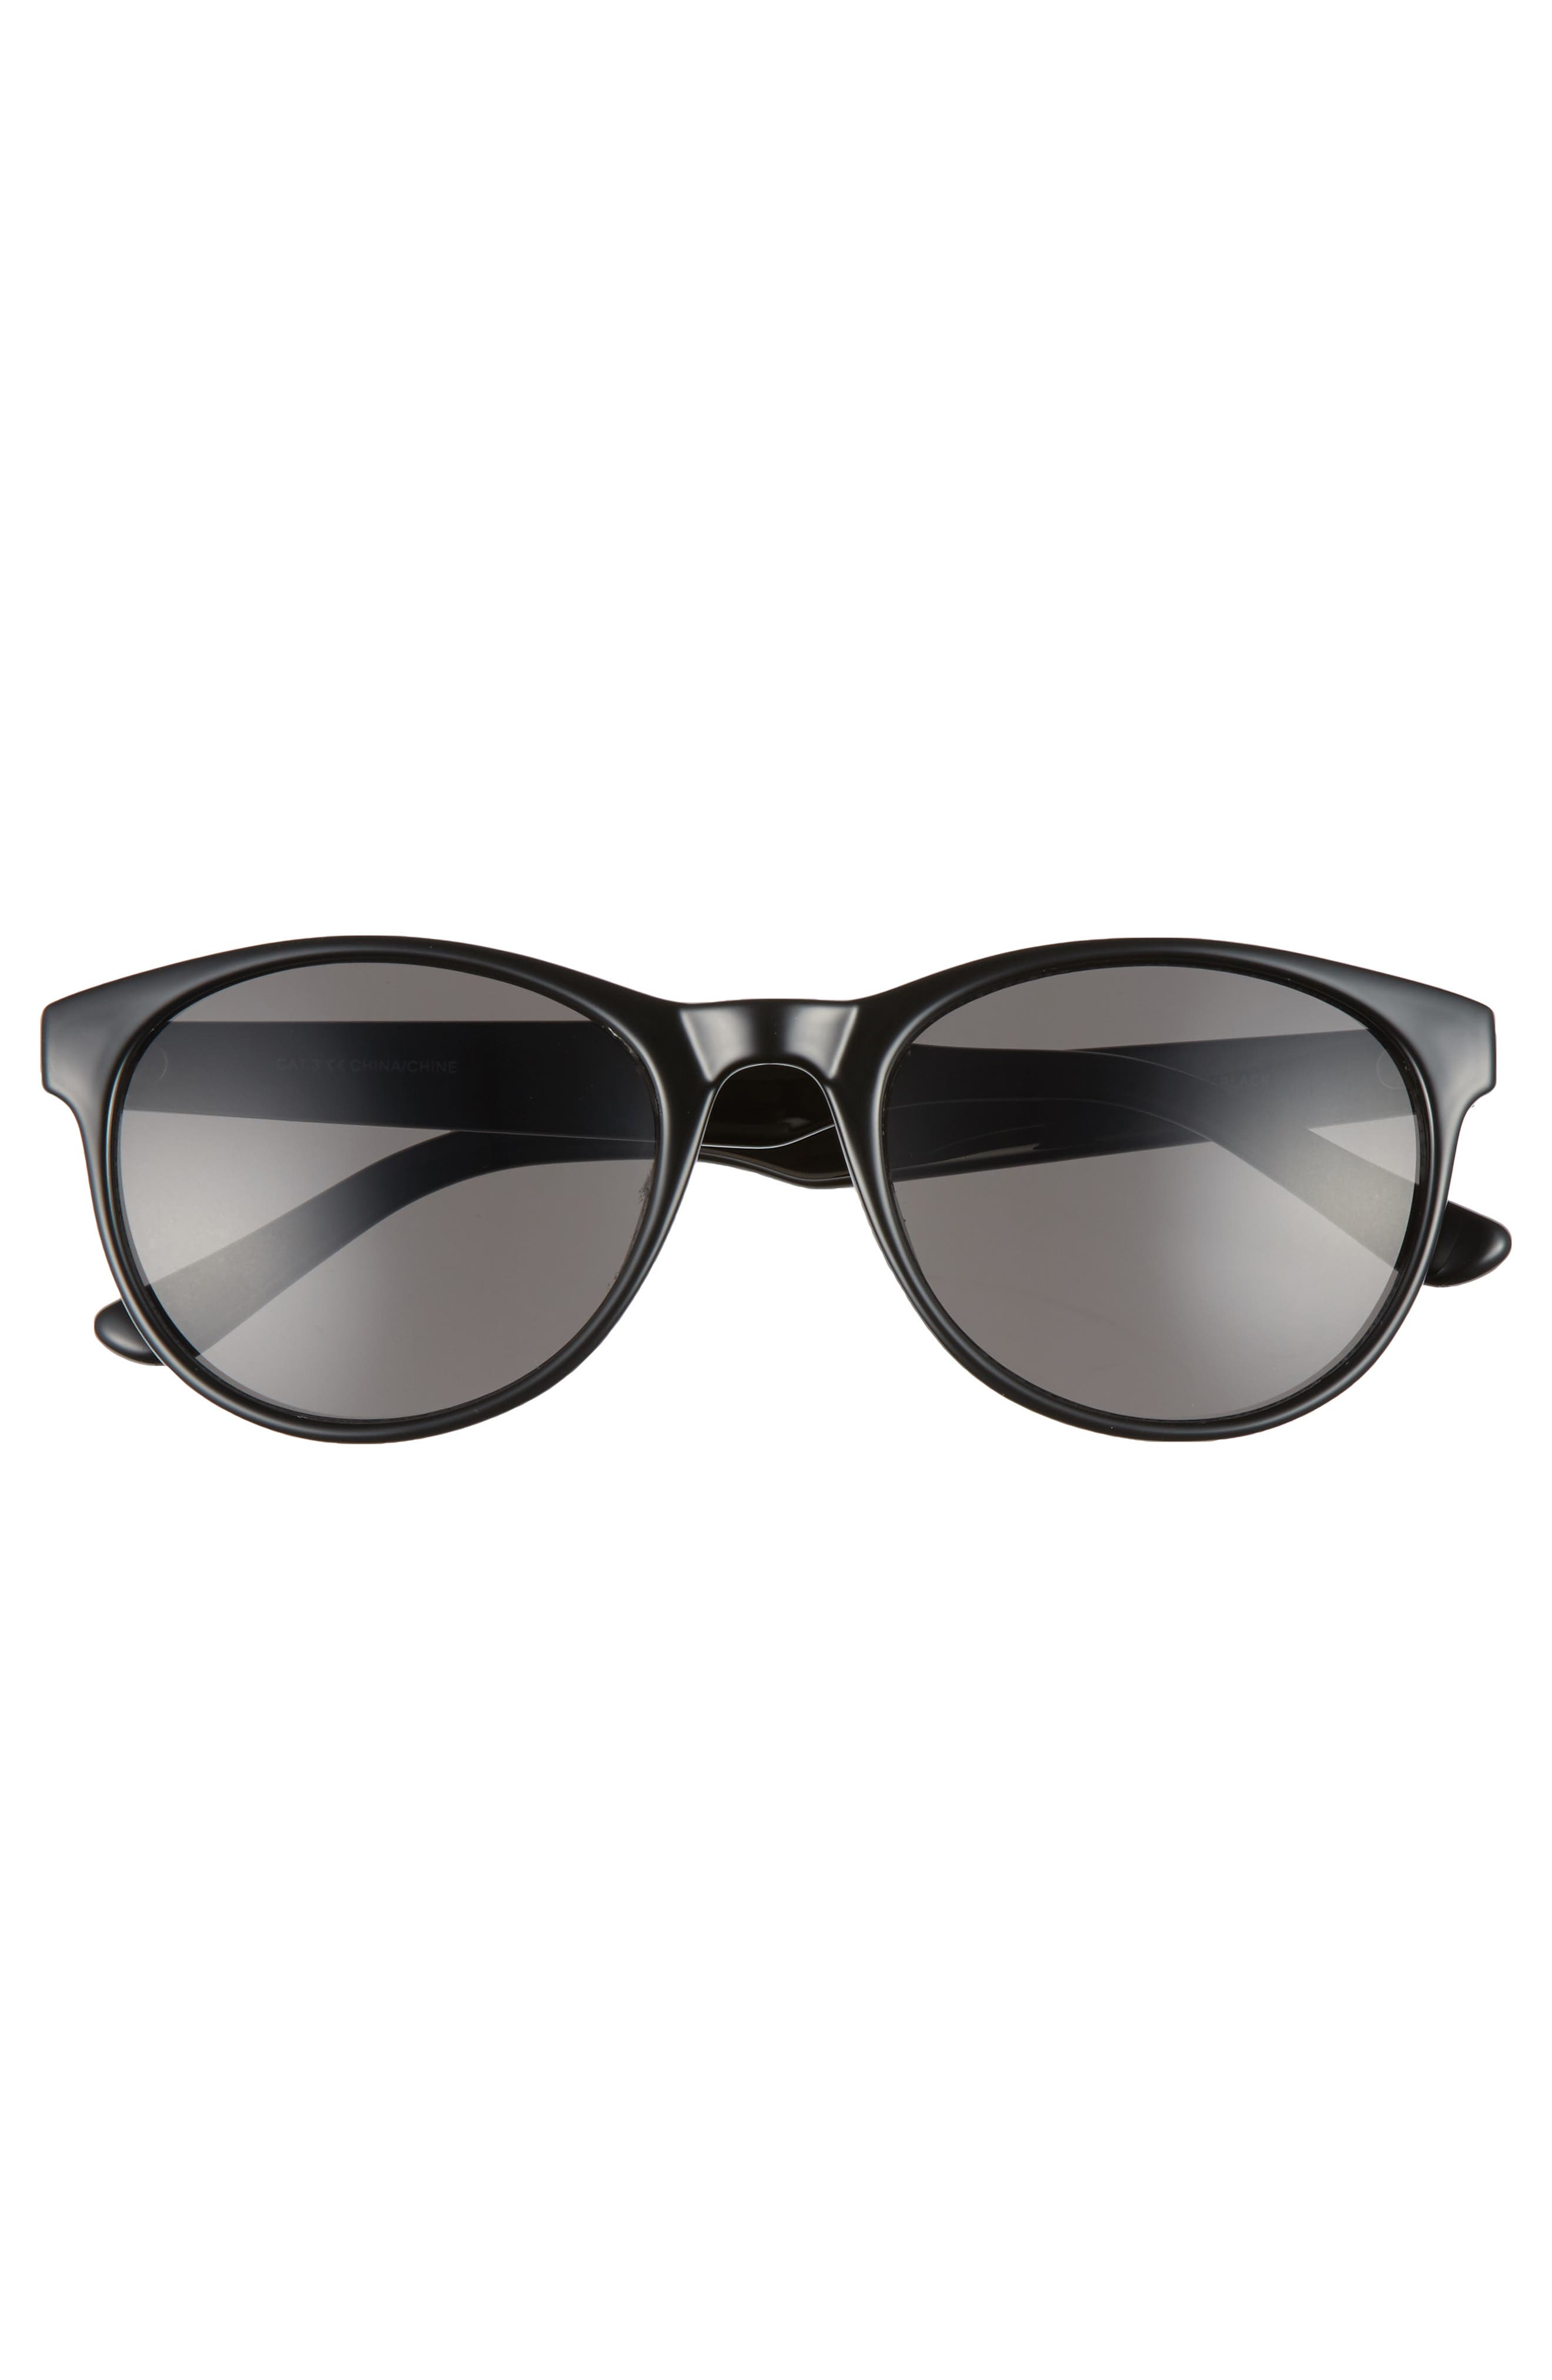 Victor 54mm Sunglasses,                             Alternate thumbnail 2, color,                             BLACK/ GREY